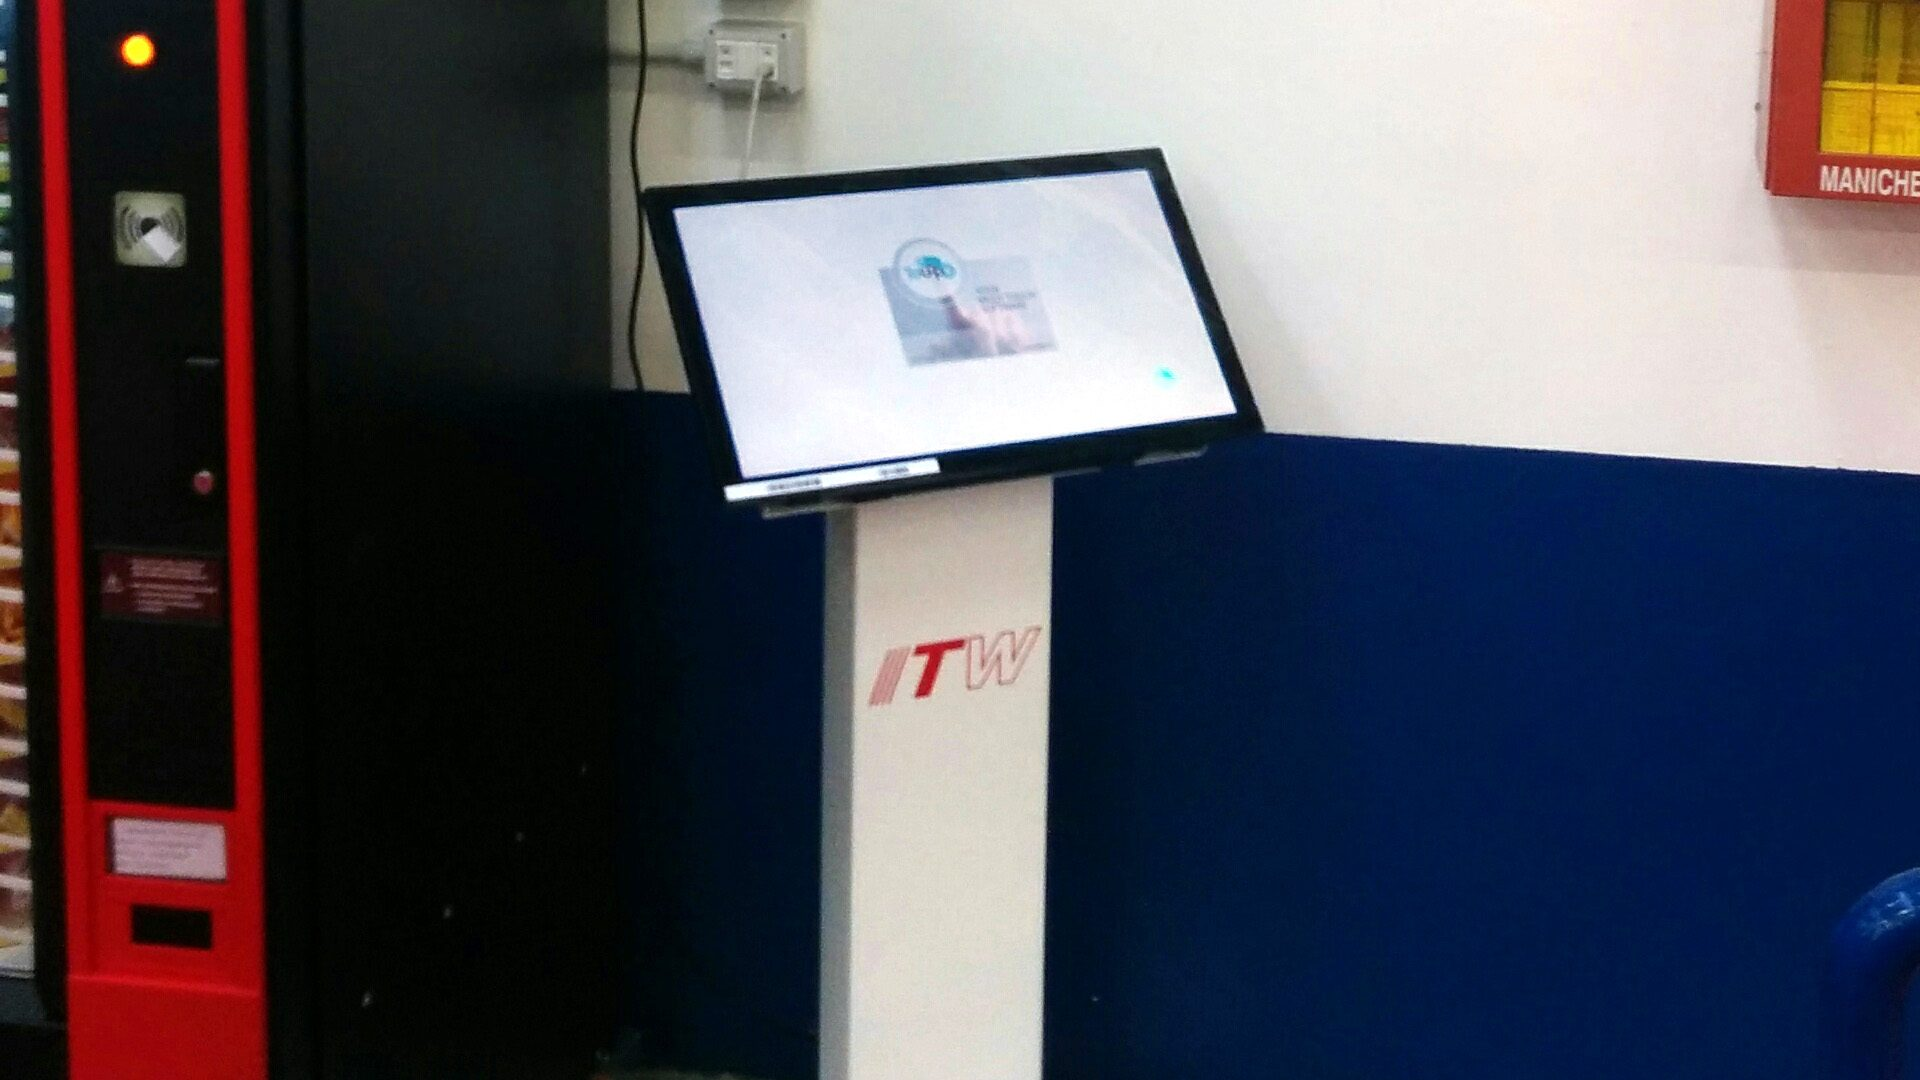 Digital Signage evoluto pgdue